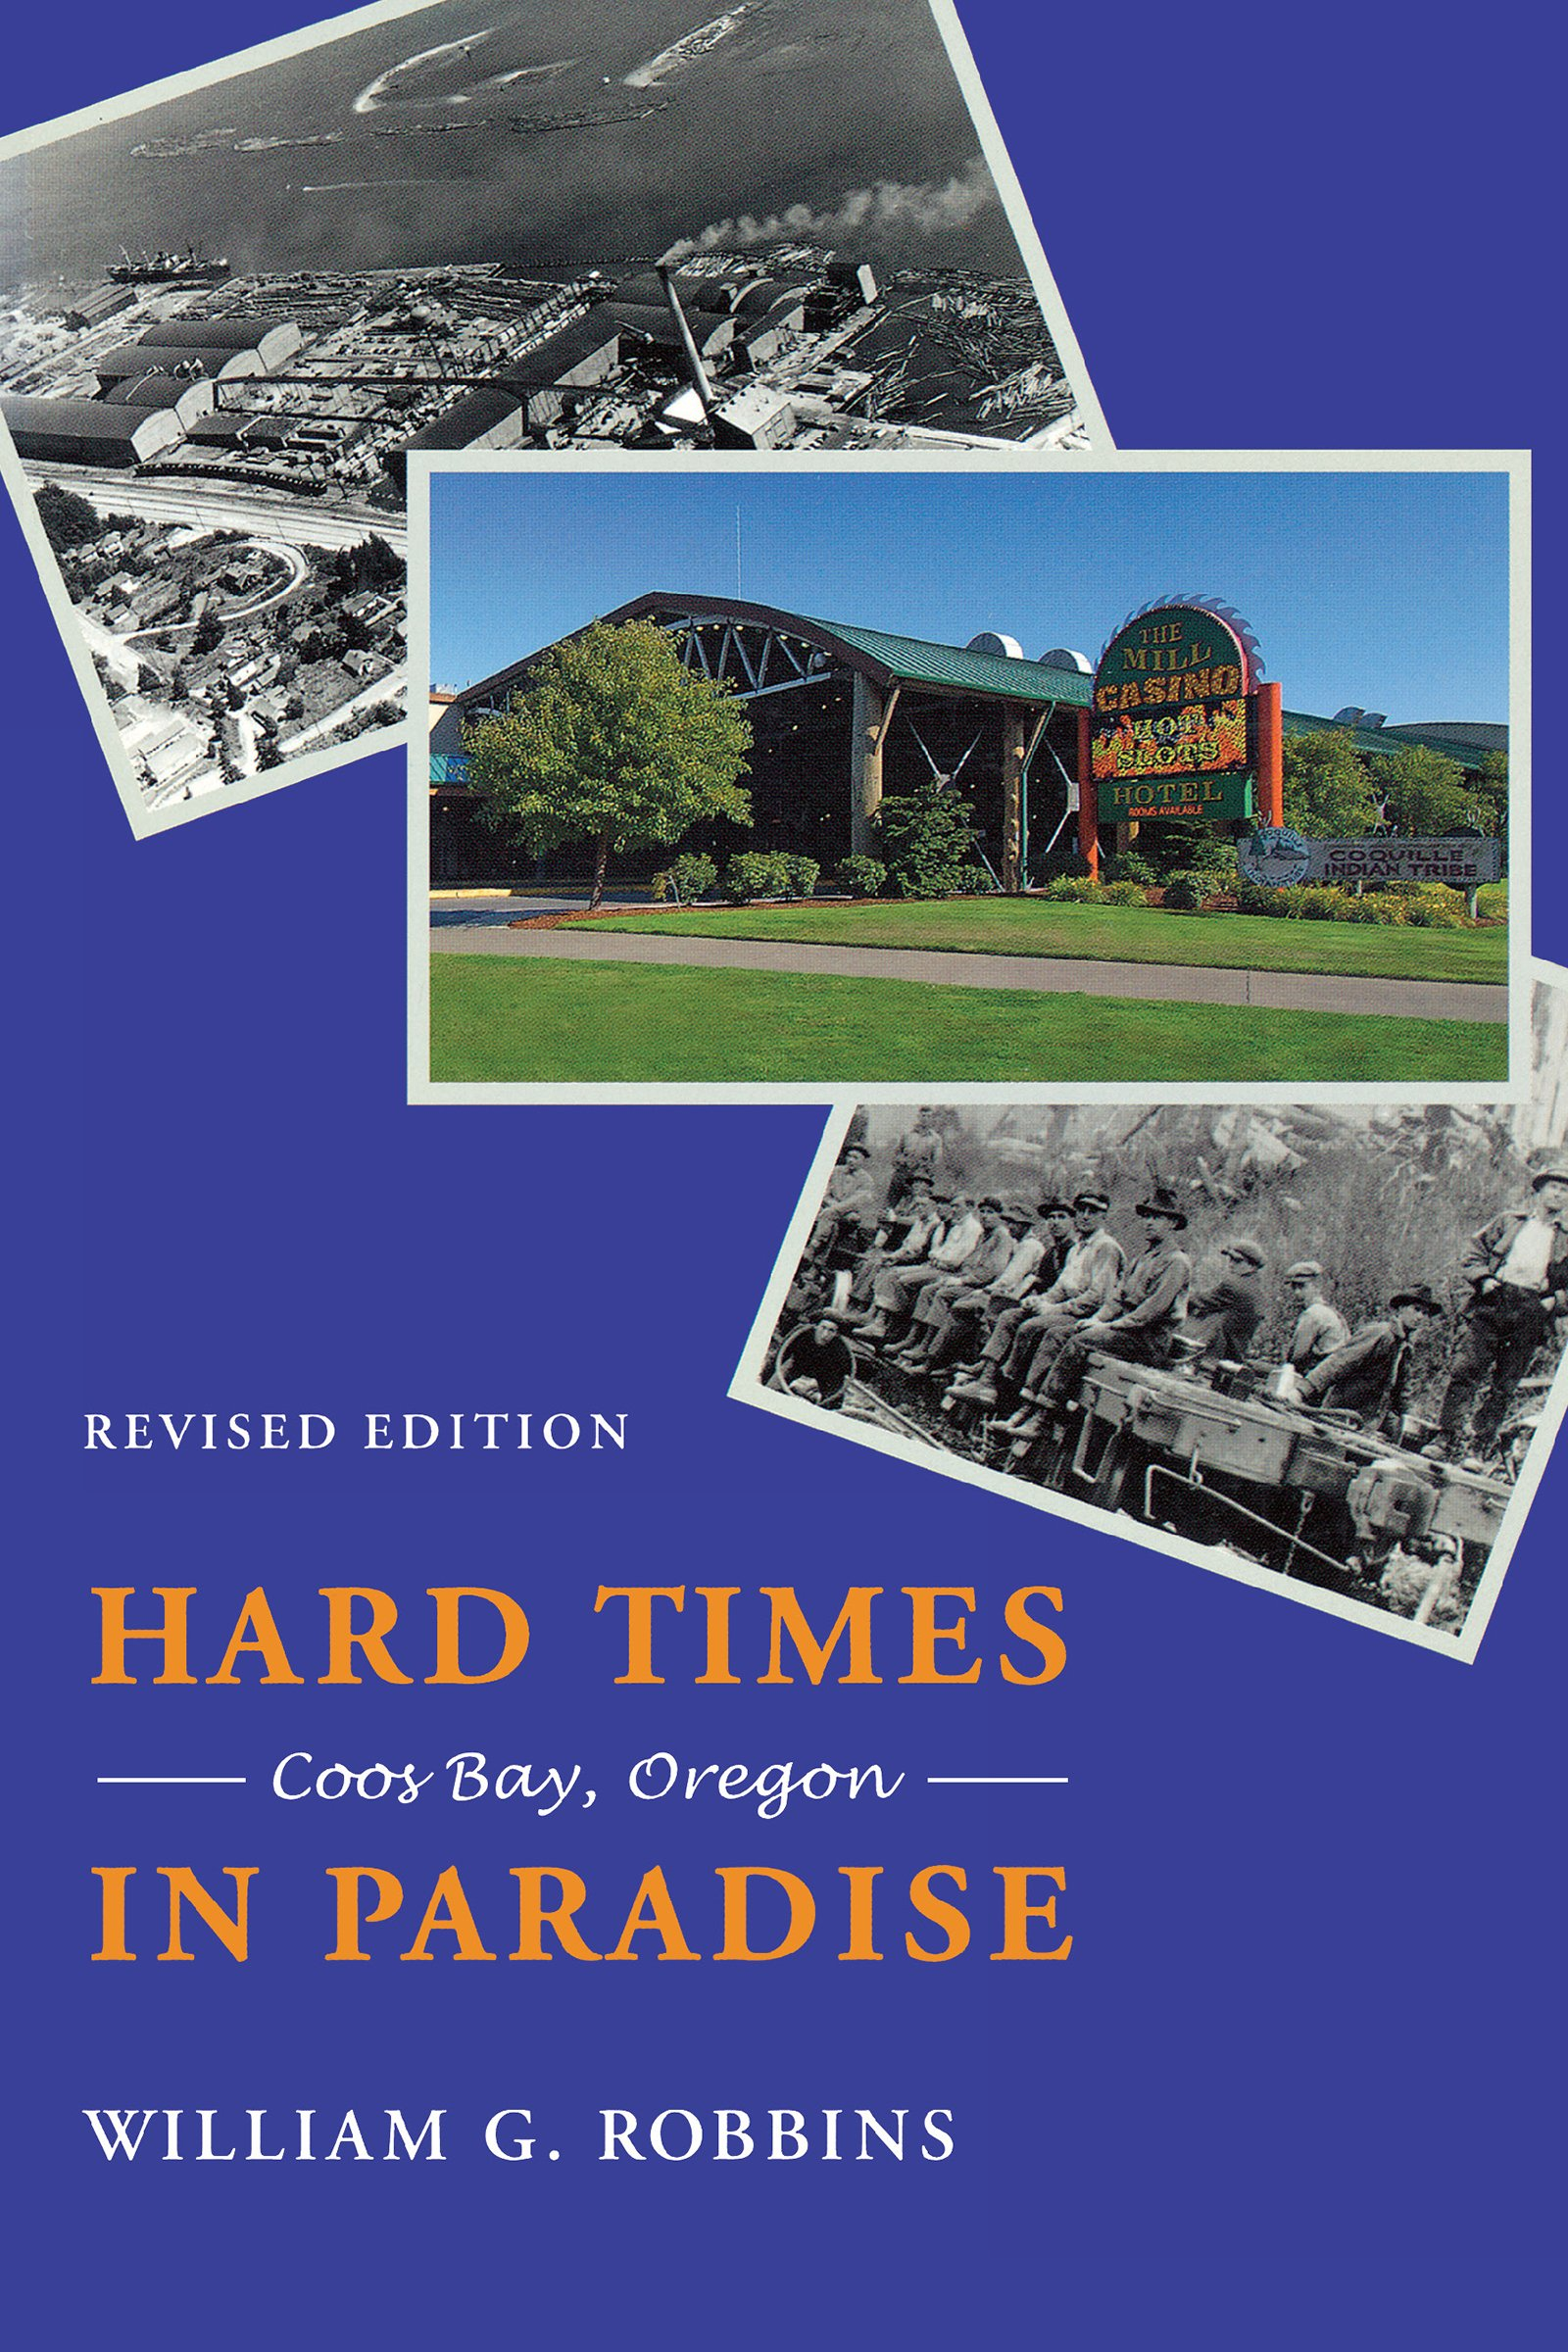 Hard Times in Paradise: Coos Bay, Oregon, Revised Edition ebook